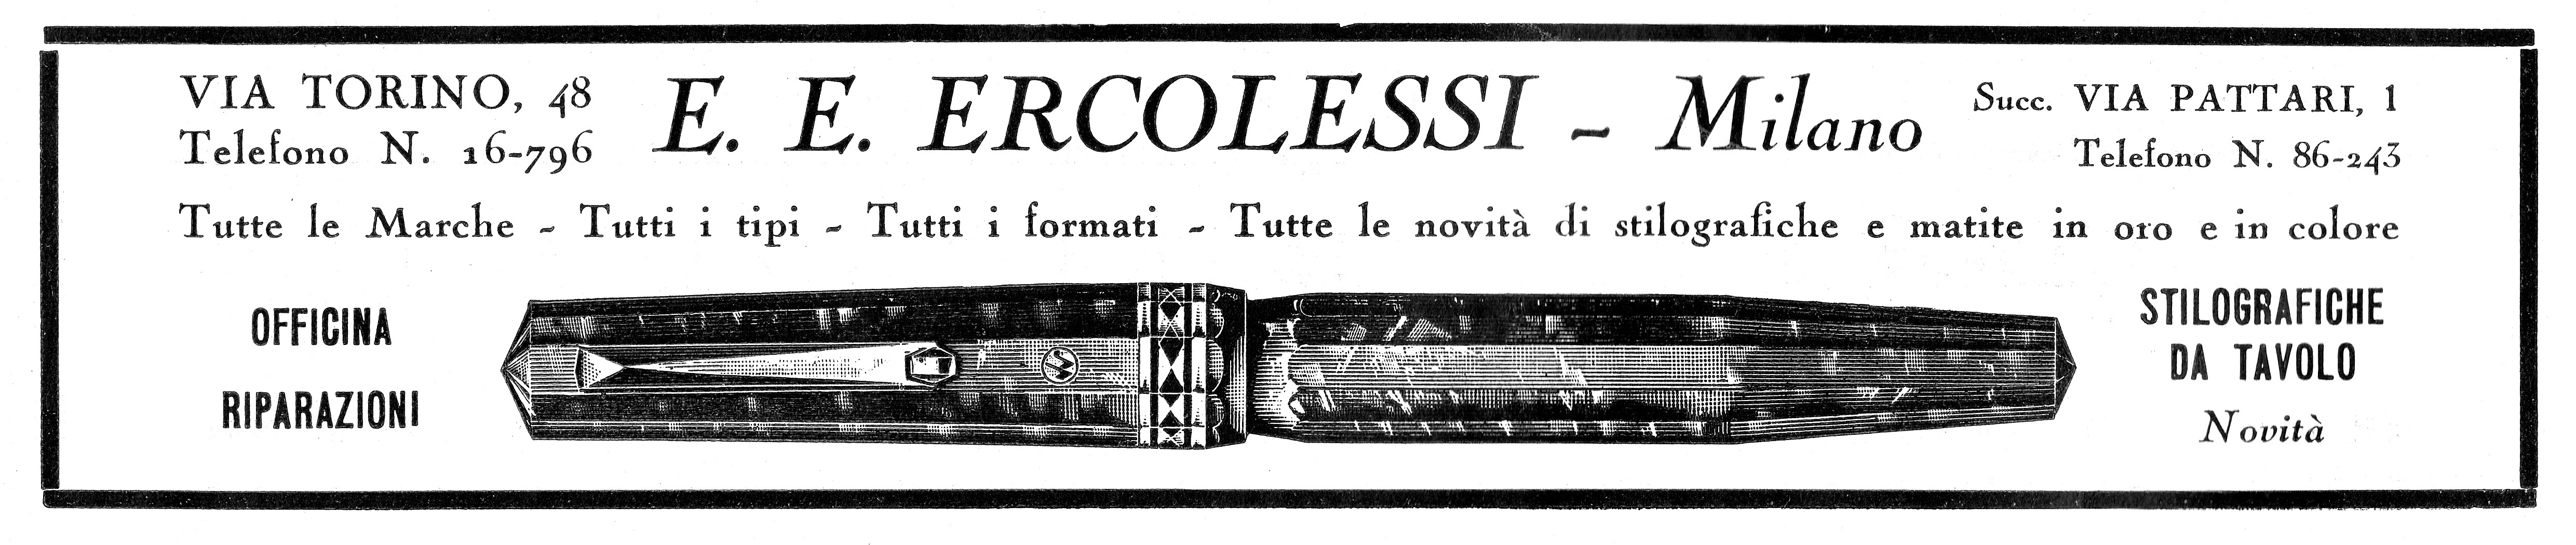 6. ERCOLESSI - Wahl Eversharp Doric prima serie - 1933-03. Anno 29 N.339, pag.41.jpg